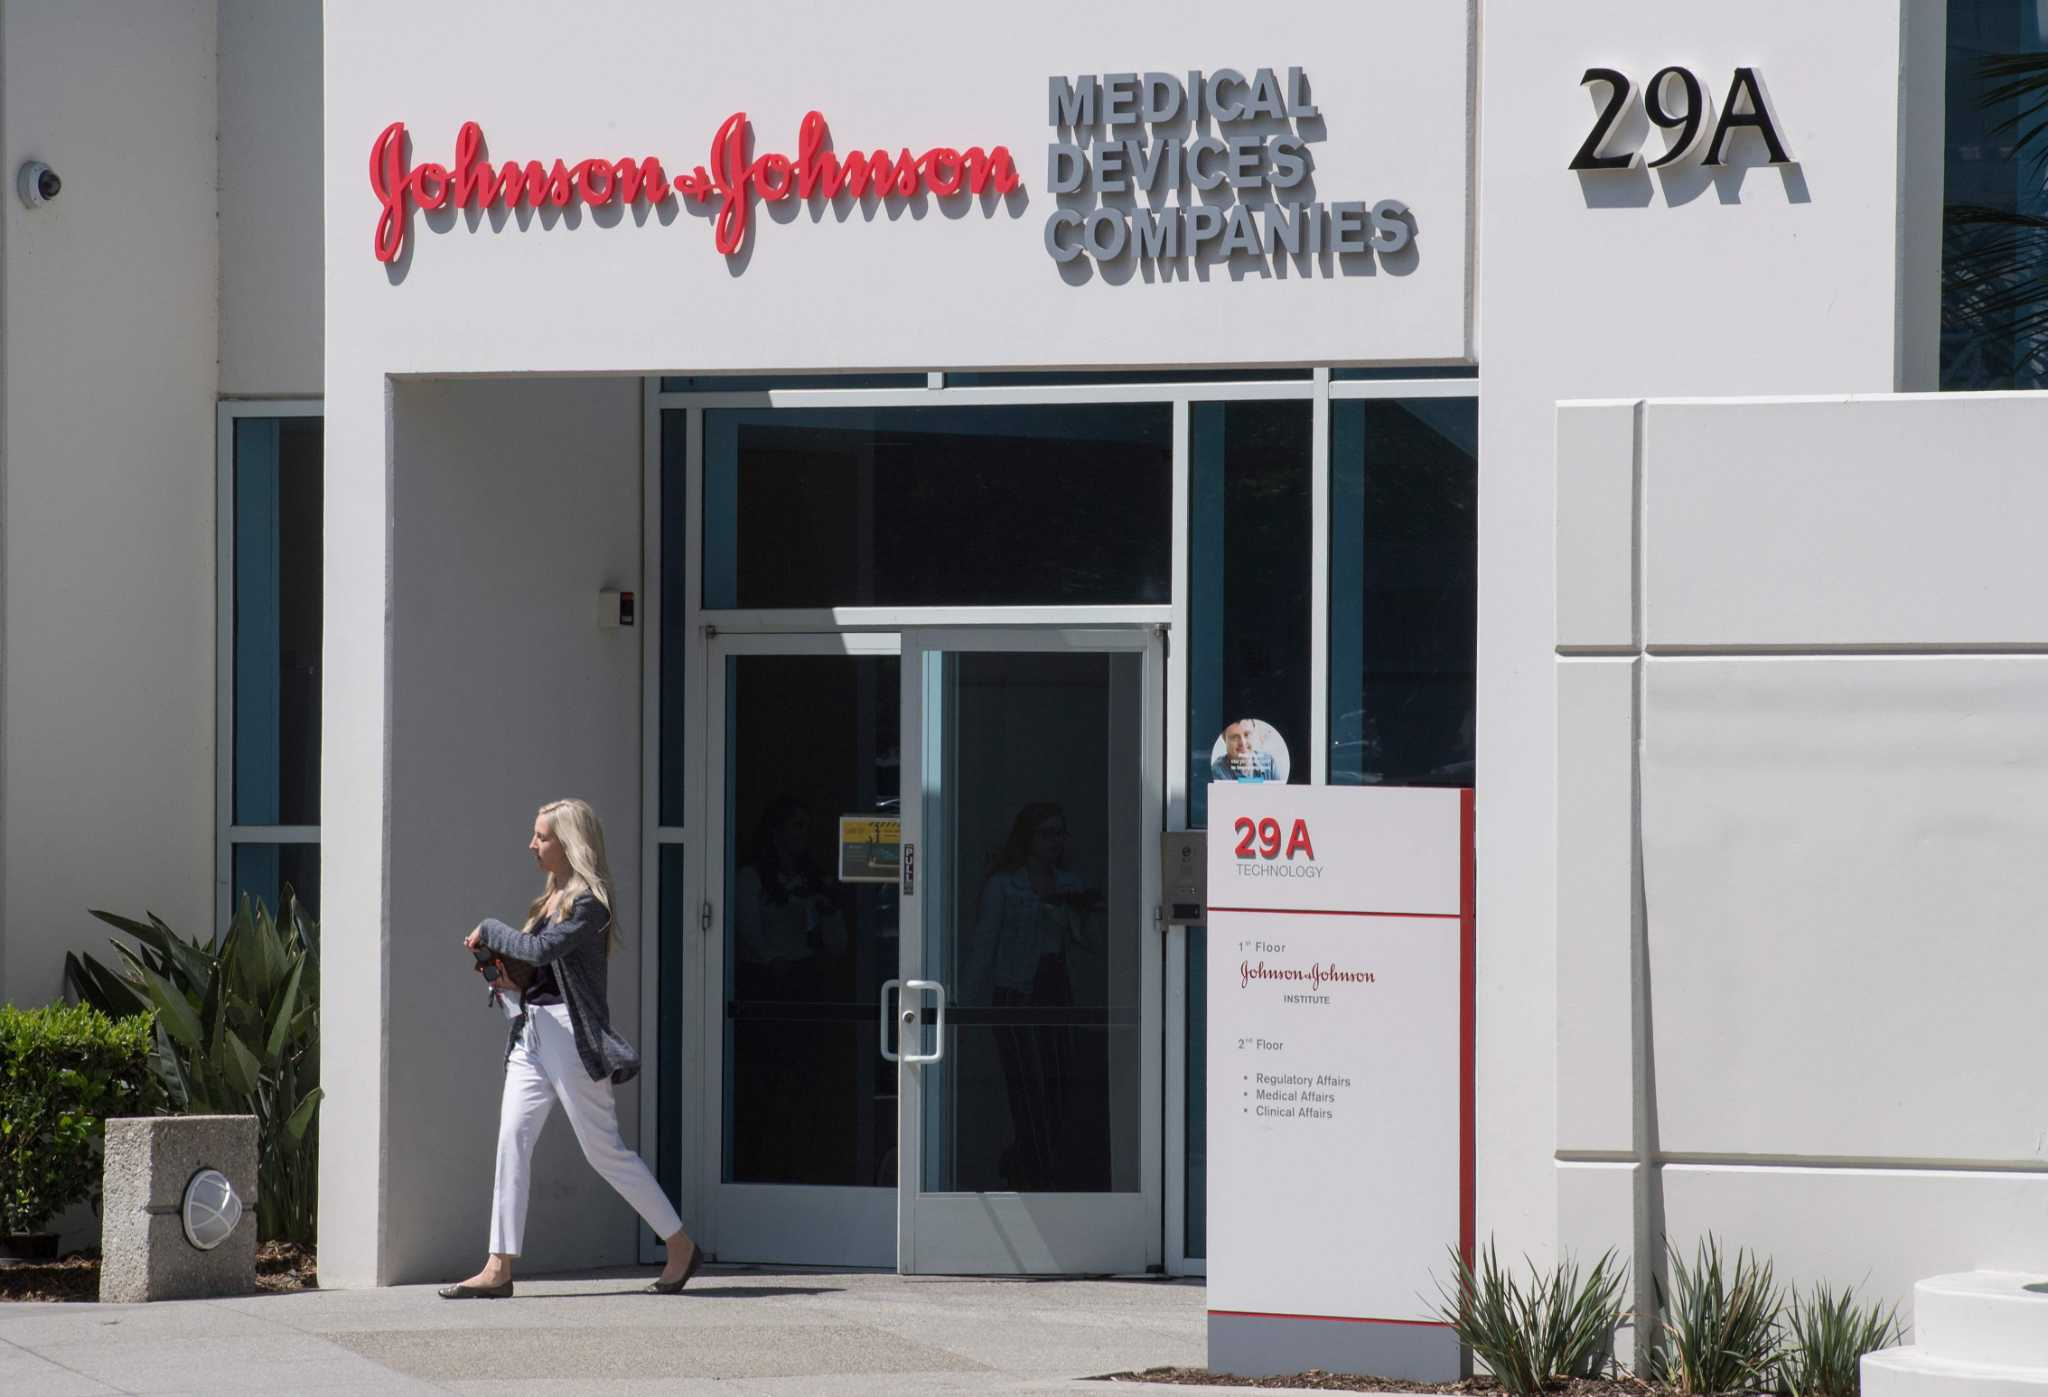 Texas sues drugmaker Johnson & Johnson over its fentanyl marketing